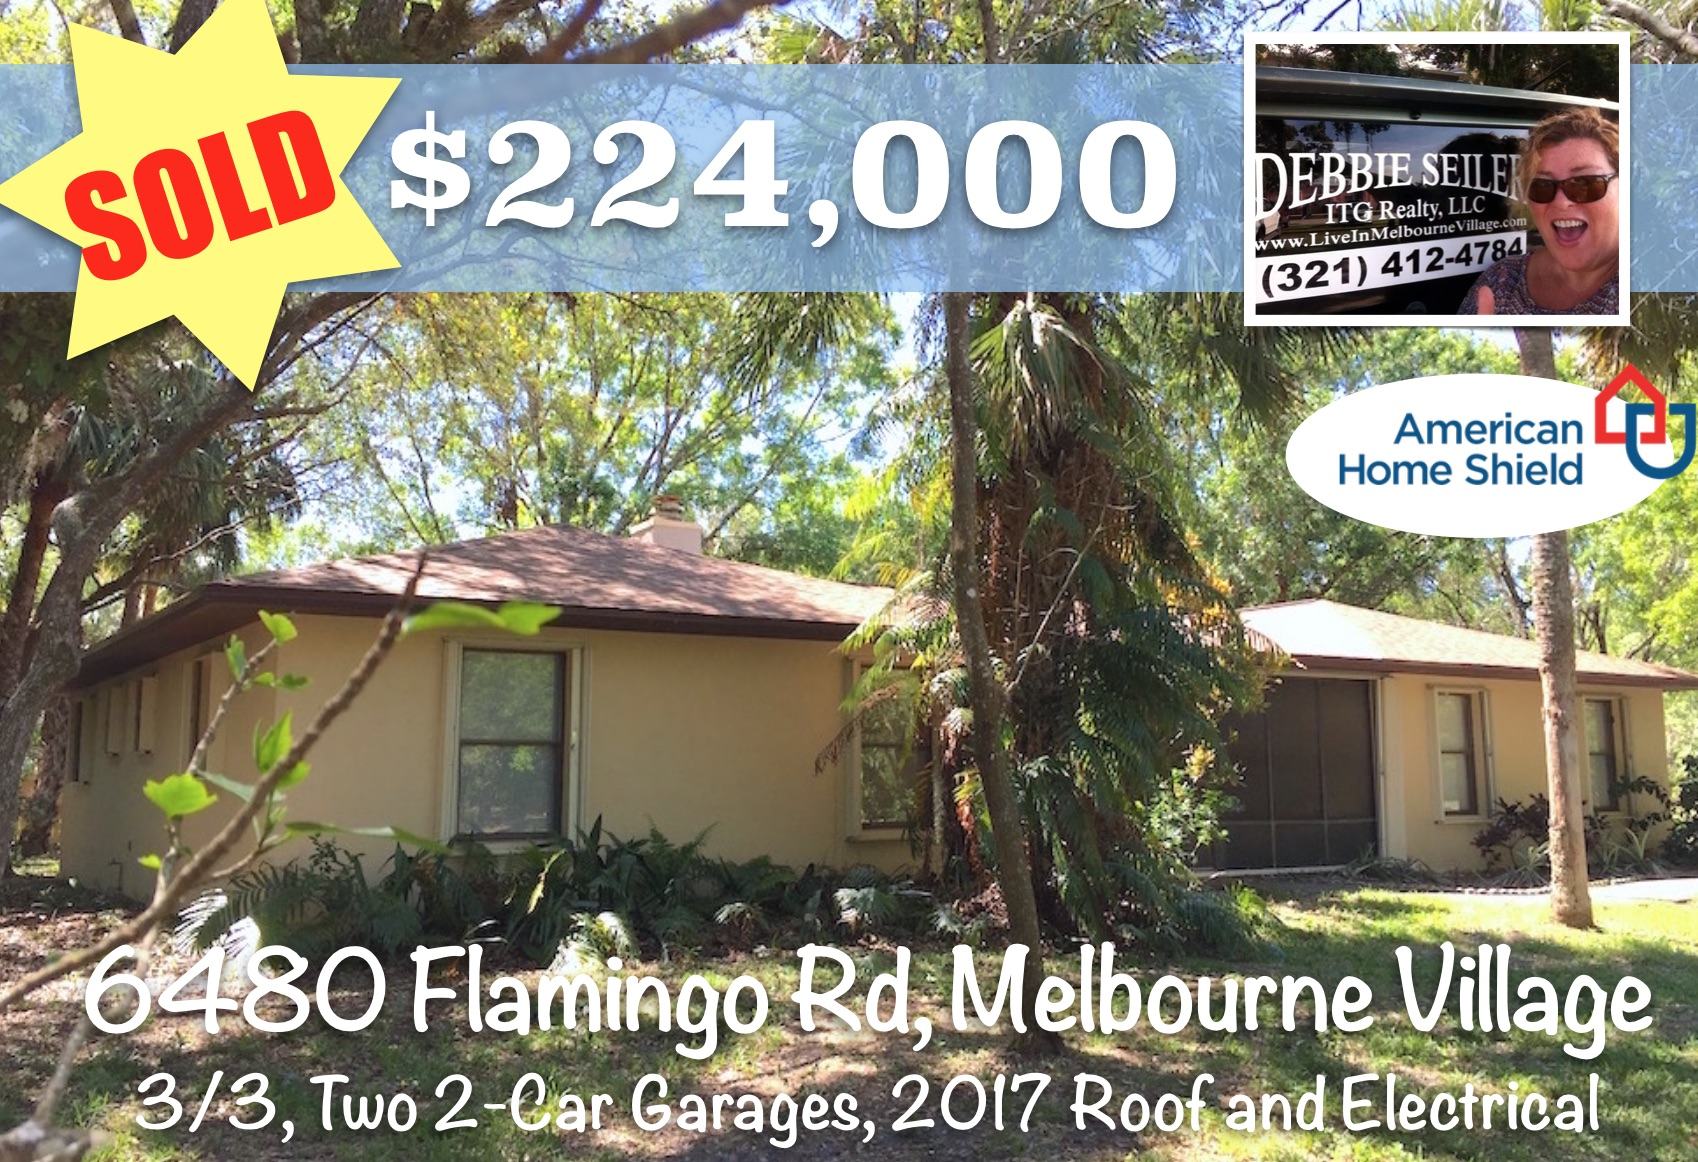 Sold Postcard 6480 Flamingo